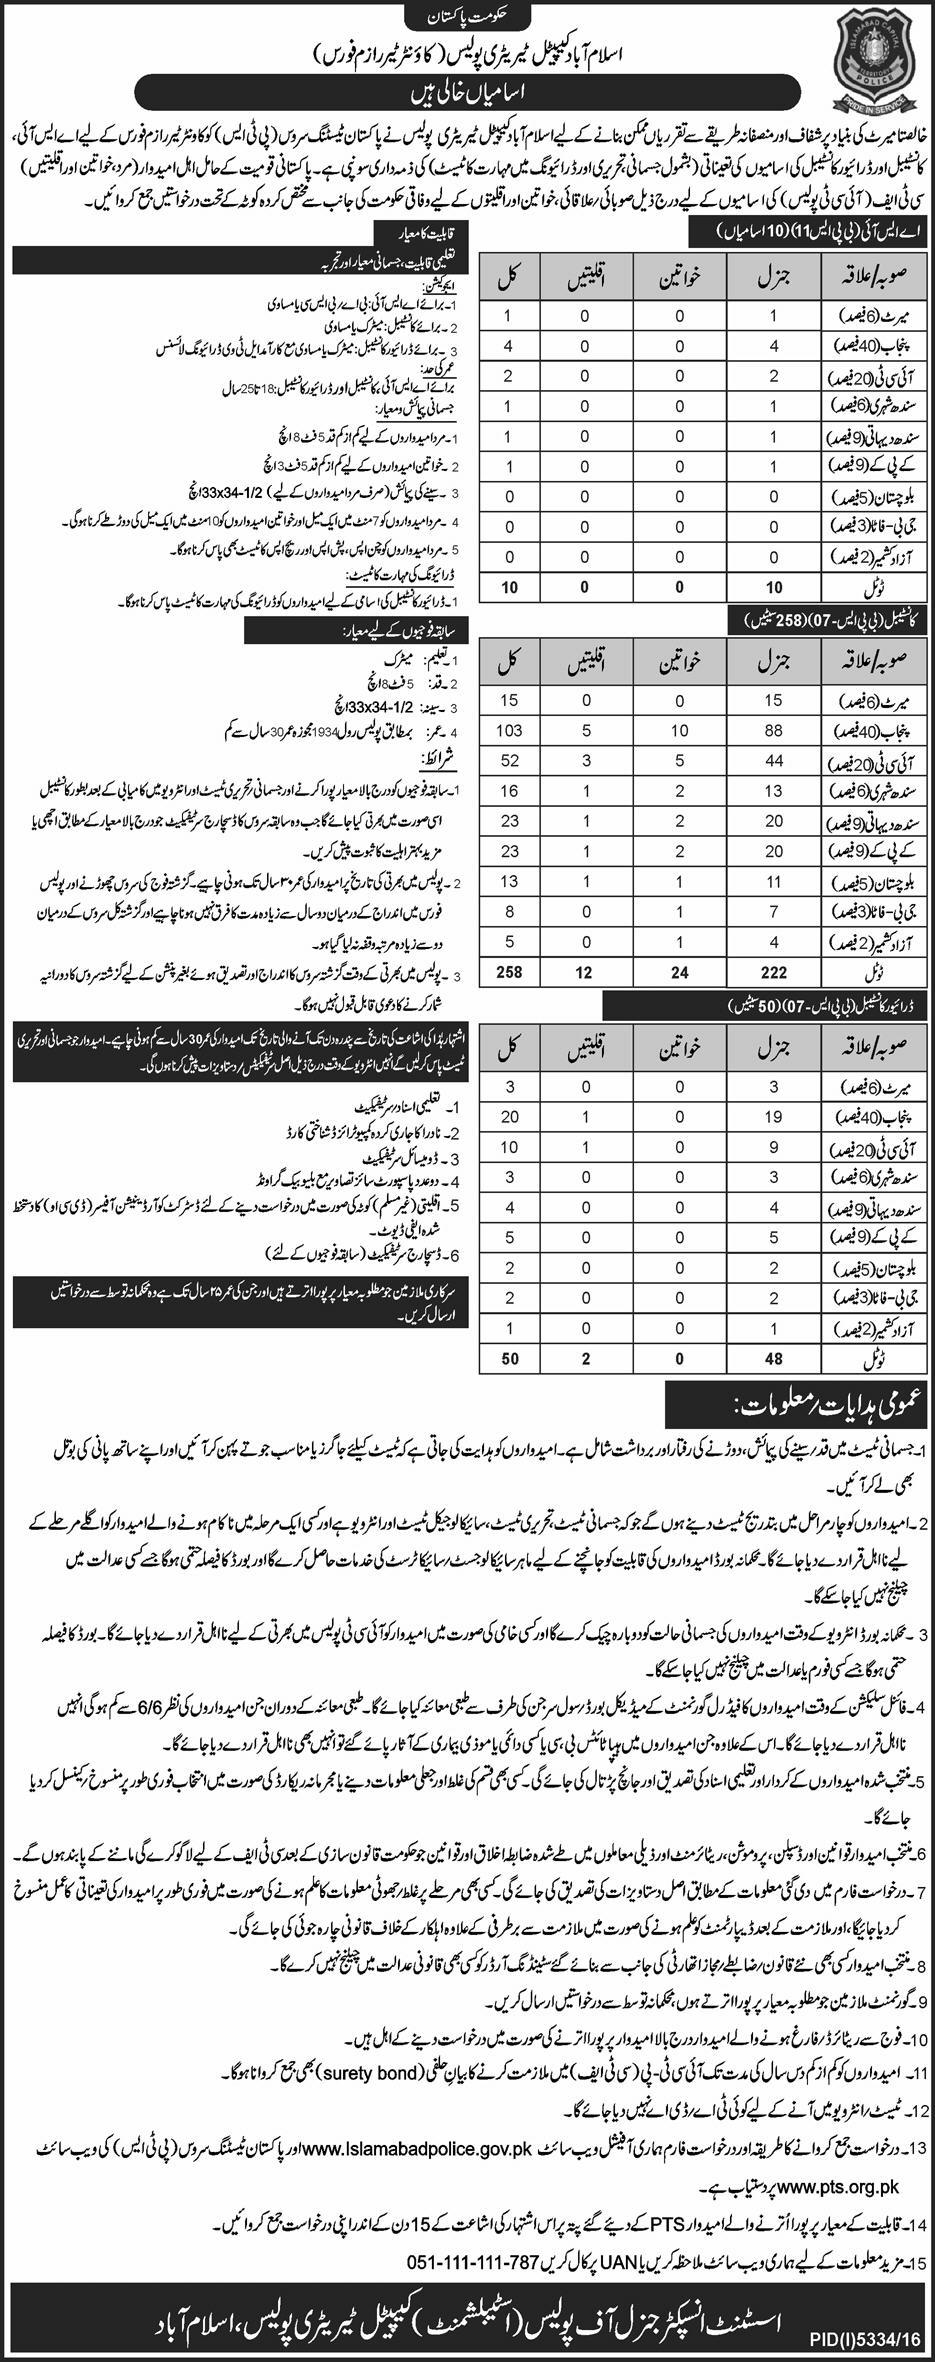 Islamabad Police Vacancies 2019 Advertisement in Urdu